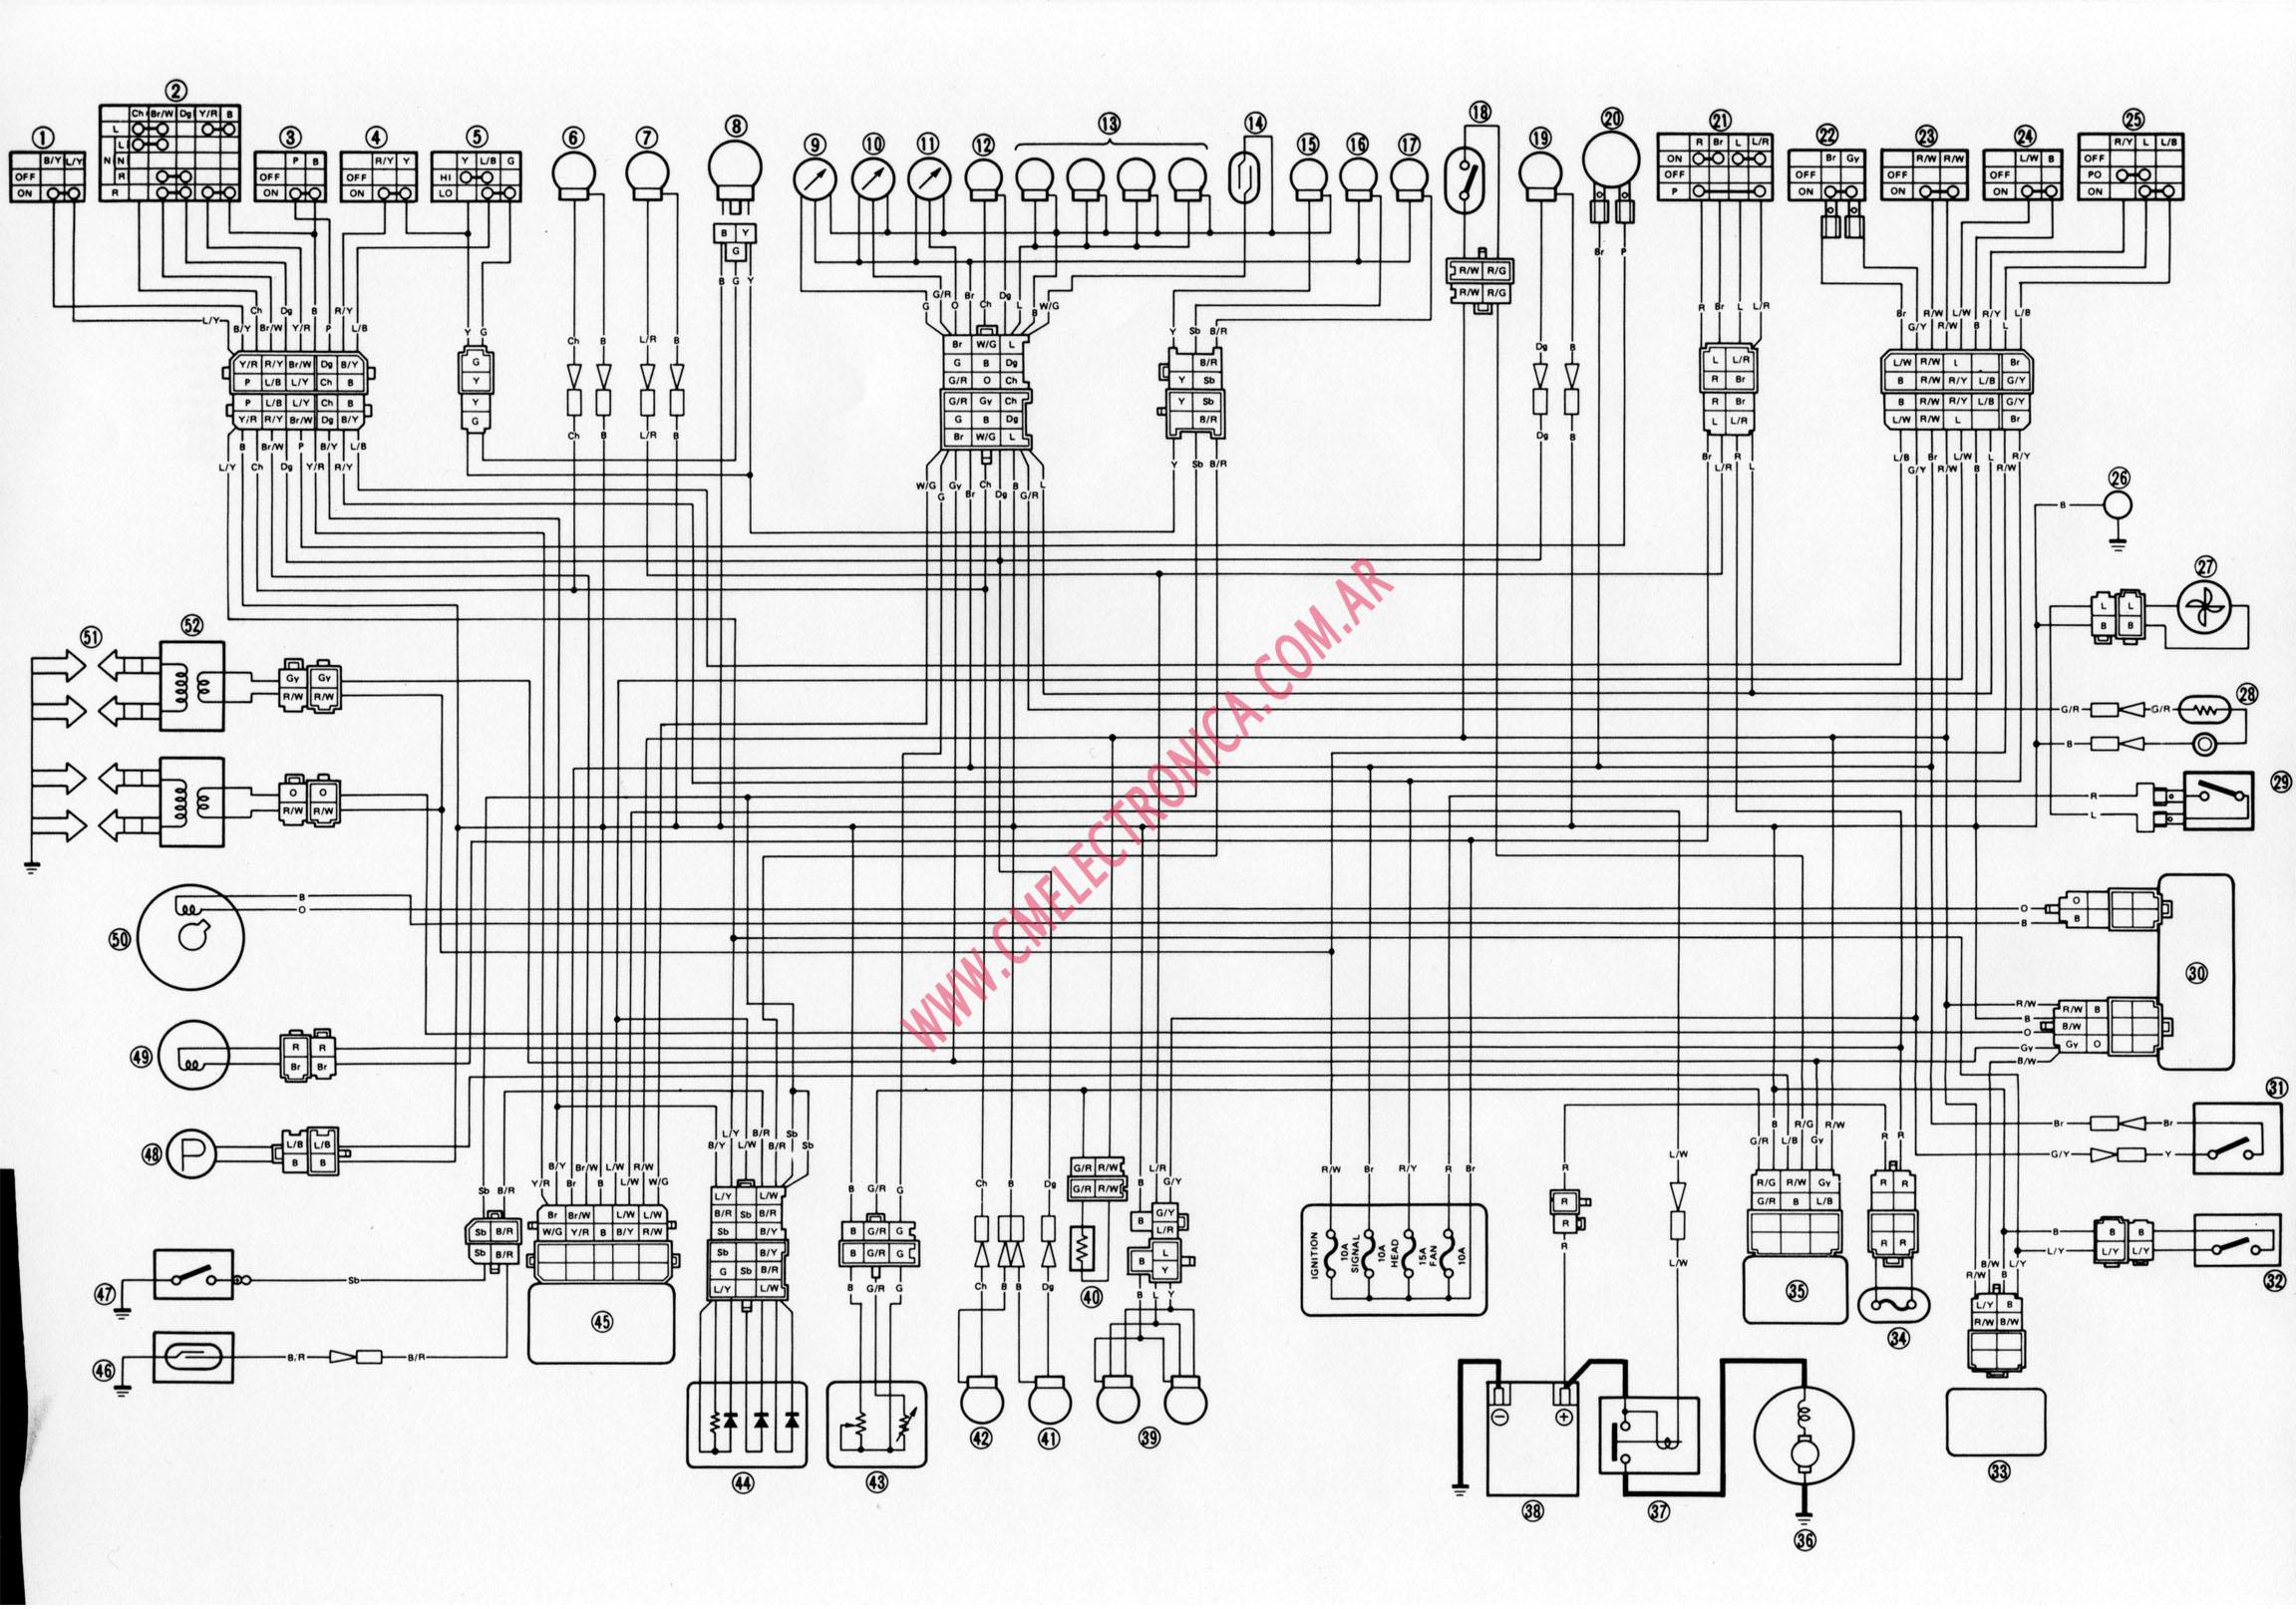 yamaha timberwolf 250 wiring diagram 94    timberwolf       wiring       diagram       wiring       diagram     94    timberwolf       wiring       diagram       wiring       diagram